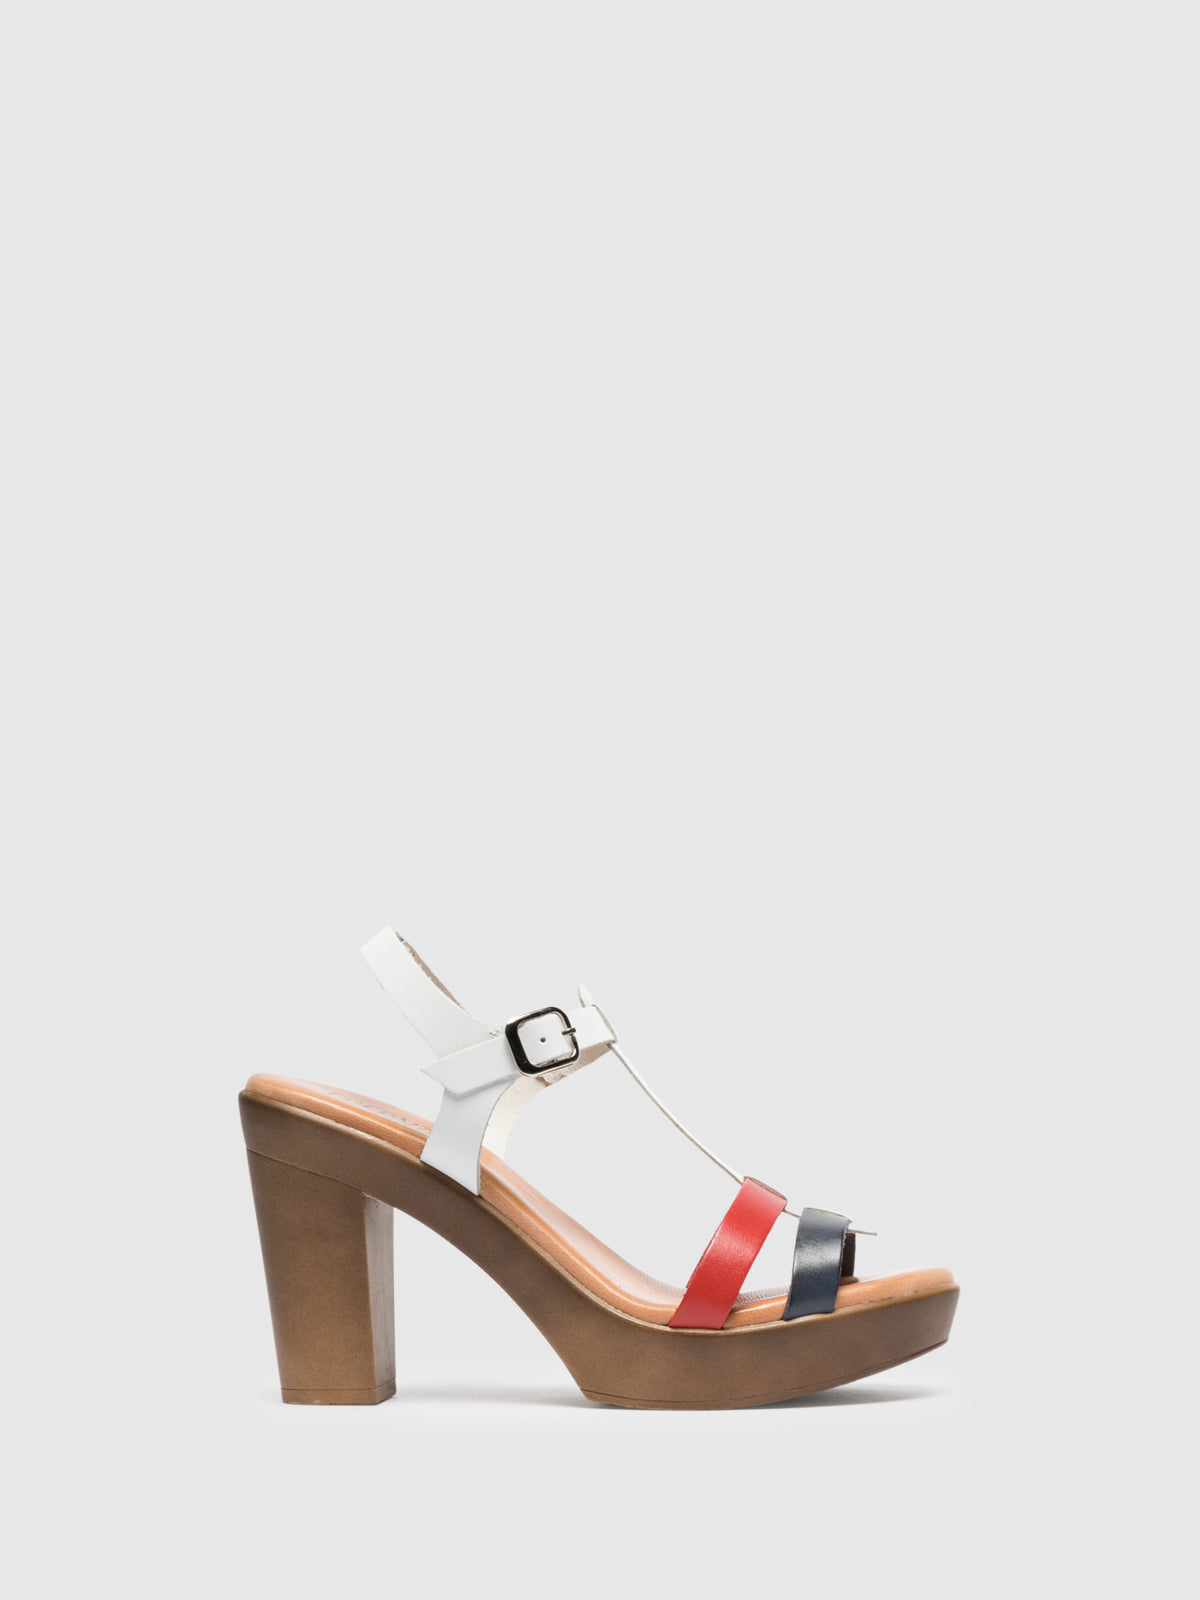 Foreva Multicolor Platform Sandals